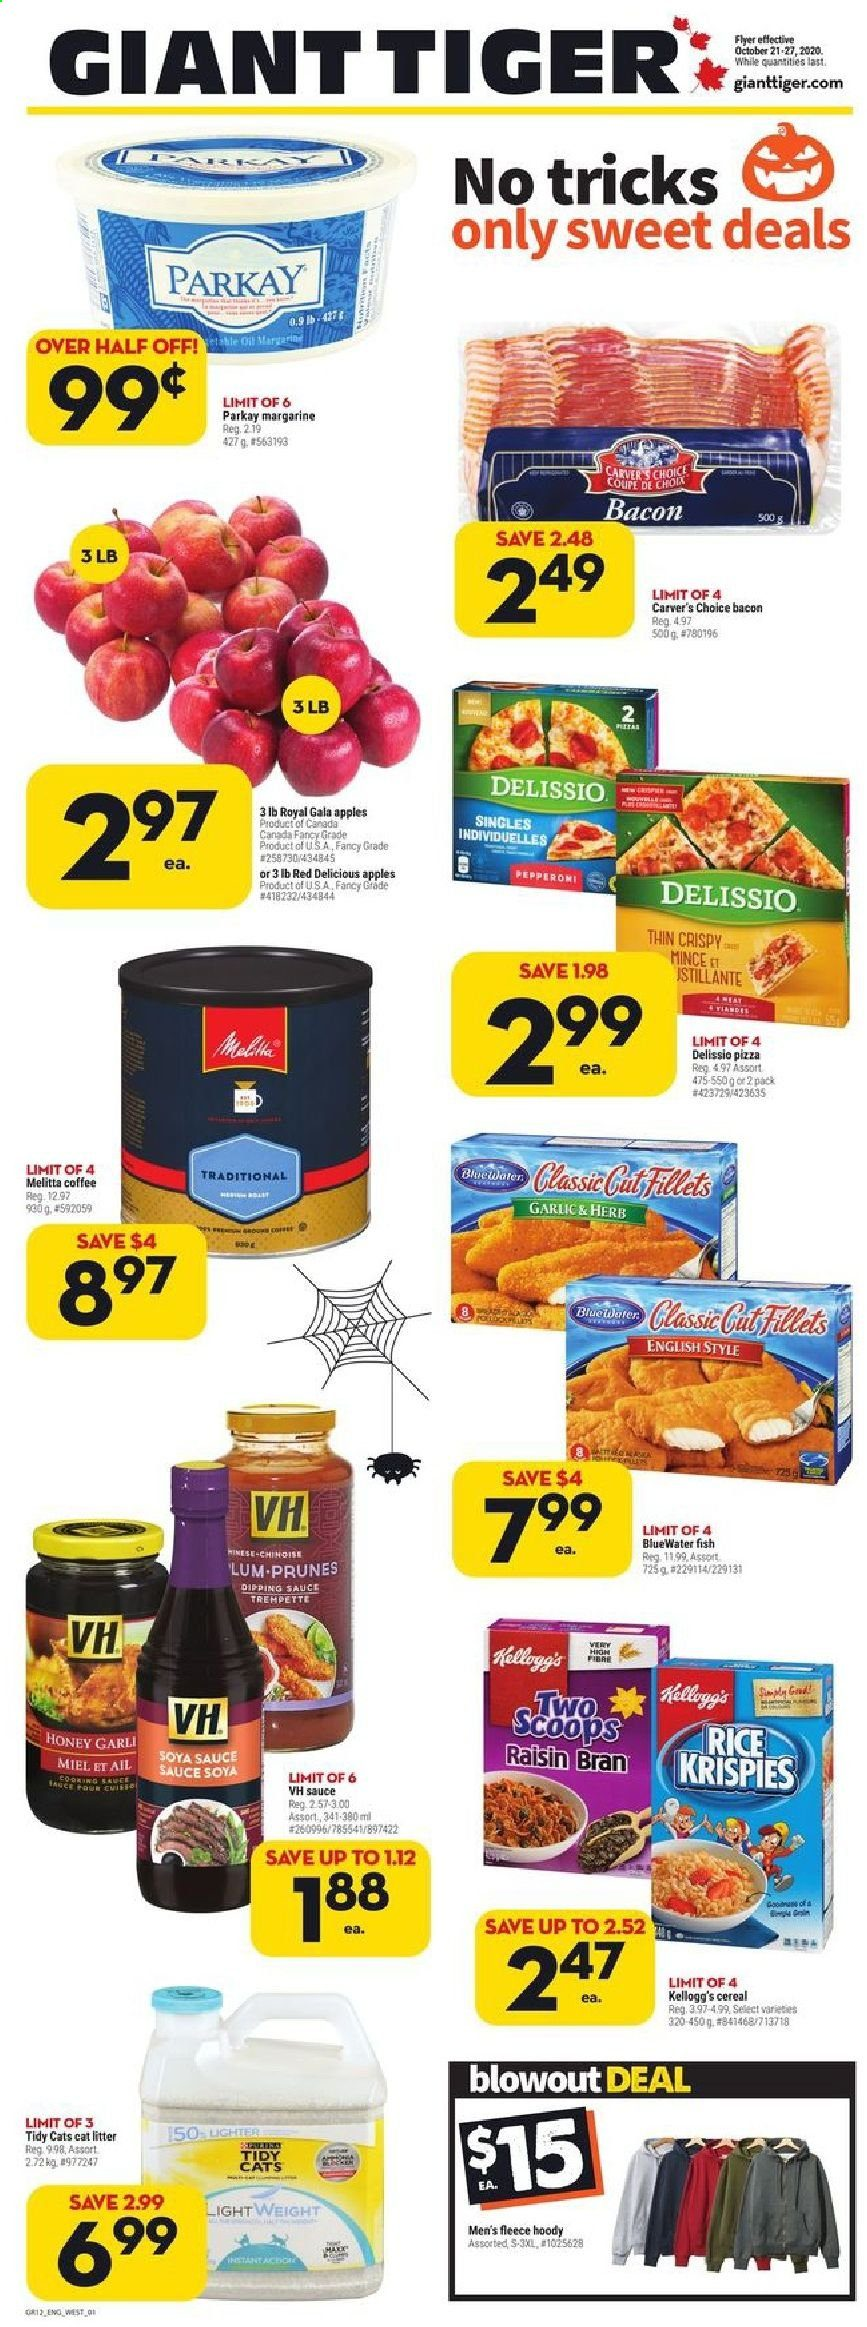 Giant Tiger Flyer - October 21, 2020 - October 27, 2020 - Sales products - bacon, bran, cat litter, cereals, coffee, gala apples, garlic, gin, litter, margarine, red delicious, rice, soya sauce, tiger, honey, pizza, prunes, cereal, sauce, ail, coupe, prune, kellogg's, miel, sauce soya, fish, red delicious apples. Page 1.